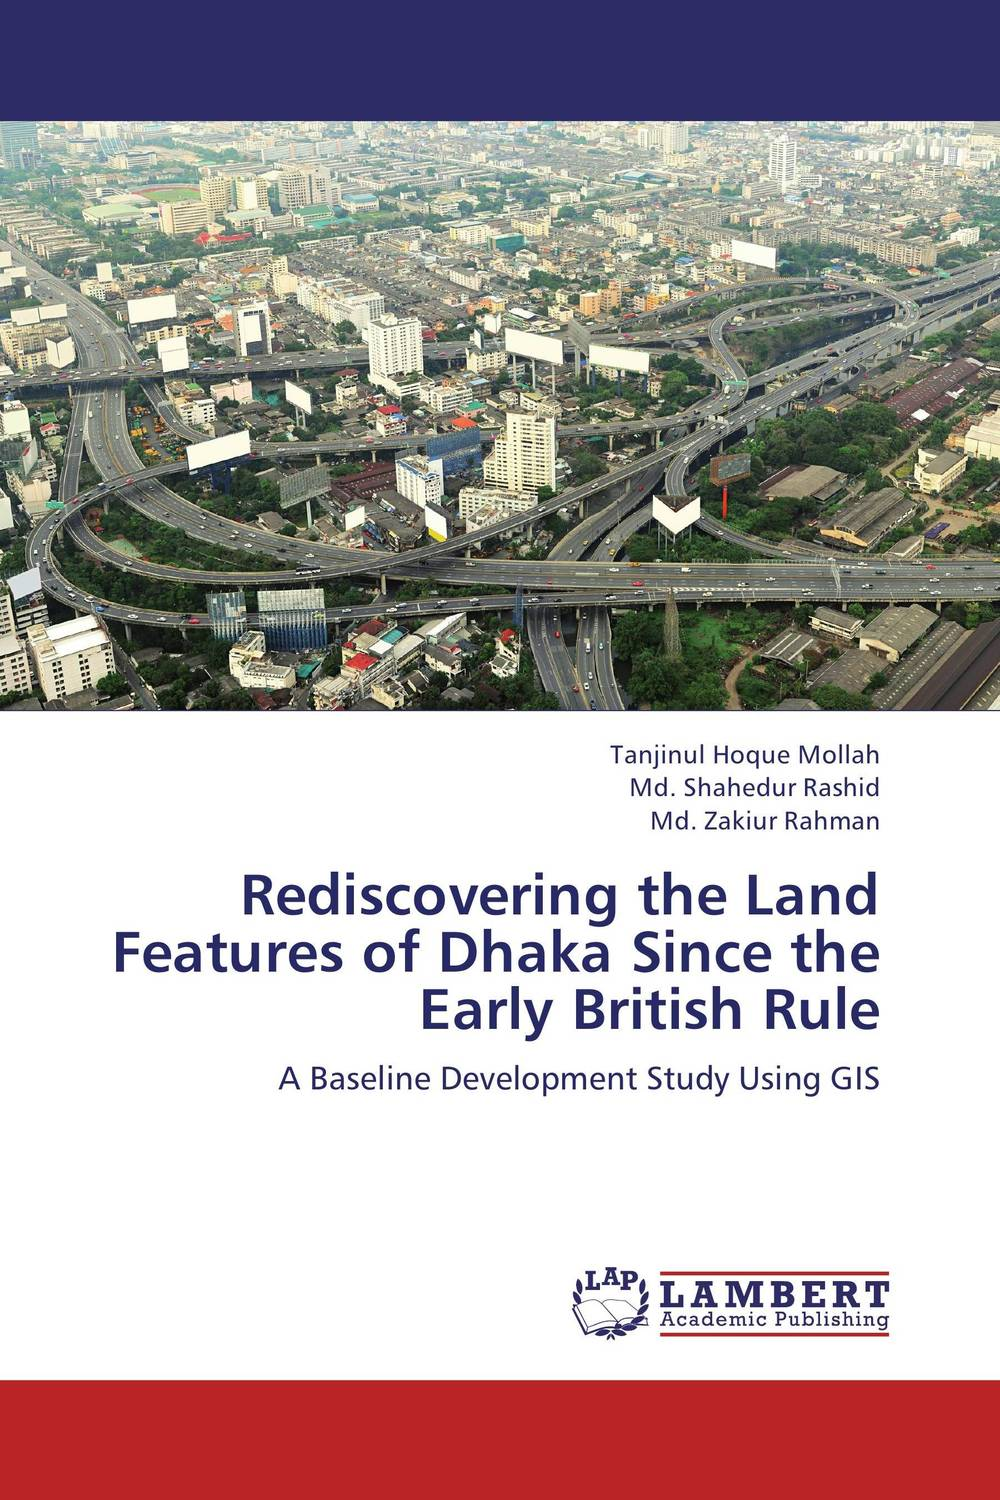 Rediscovering the Land Features of Dhaka Since the Early British Rule breastfeeding knowledge in dhaka bangladesh